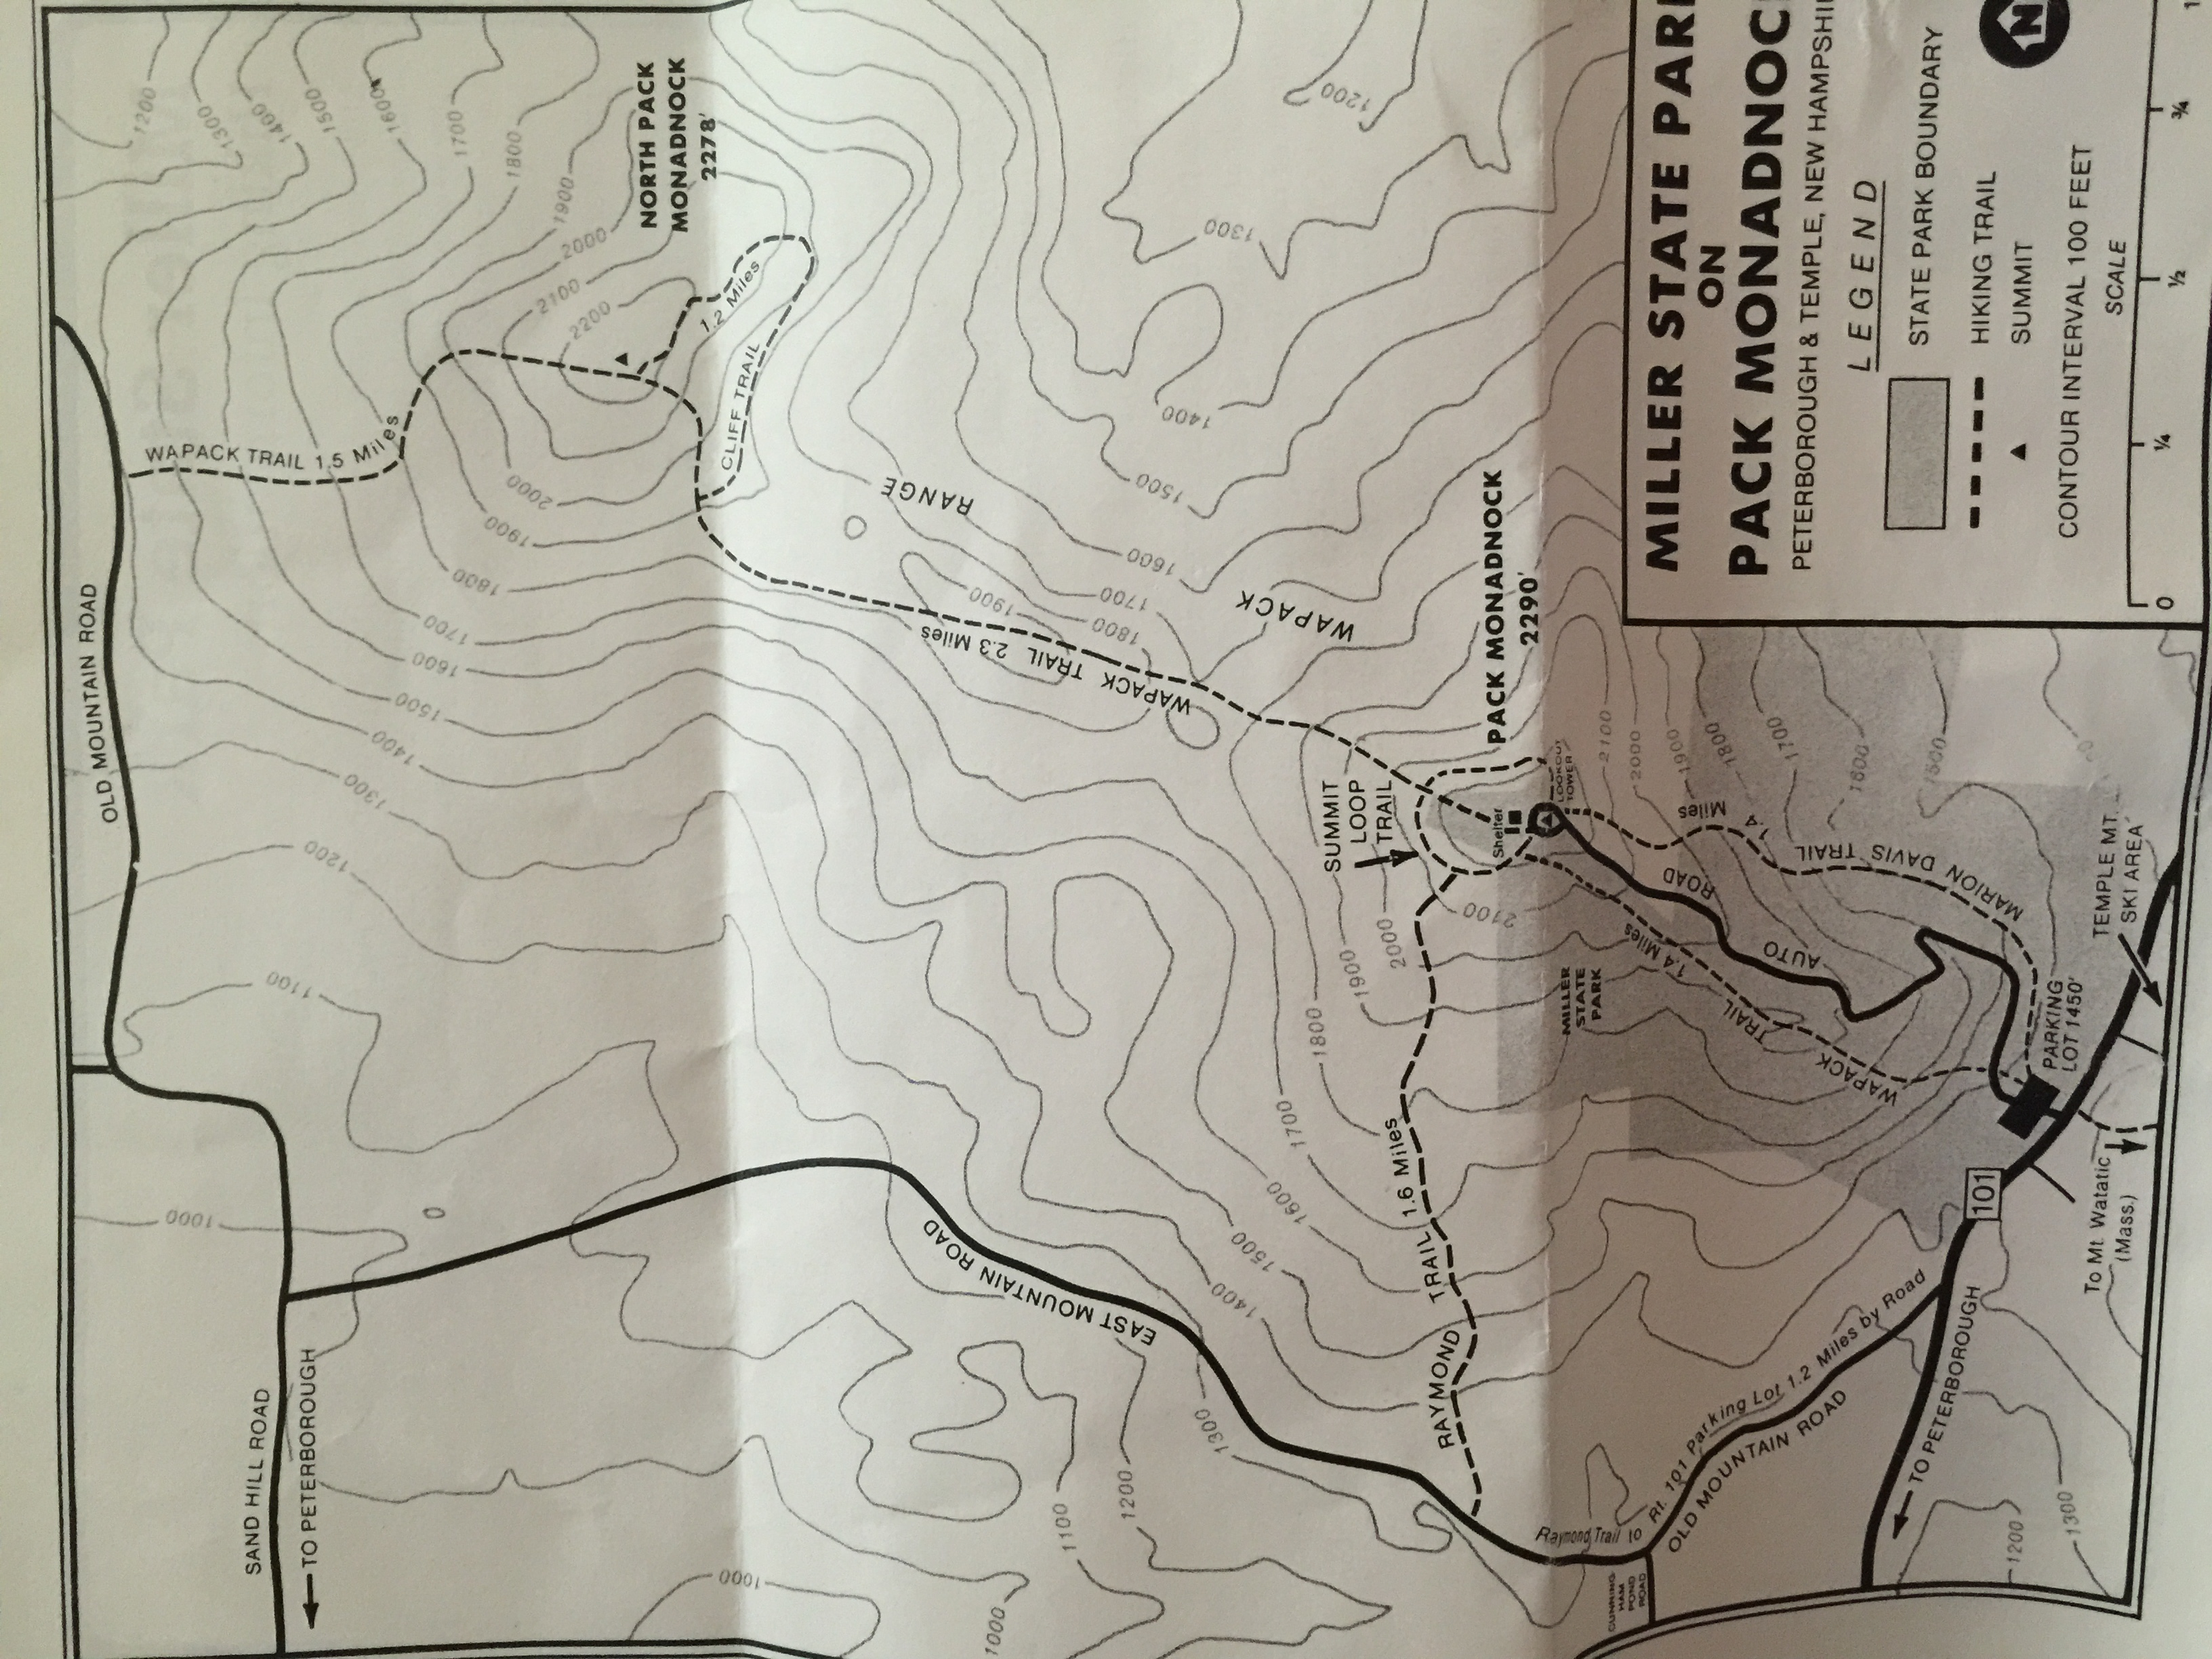 Climbing Pack Monadnock | New Hampshire | Travel Shop on mount watatic trail map, mount lafayette trail map, mt. watatic trail map, white mountains nh trail map, temple mountain nh trail map, copper mountain ski trail map, lake massabesic trail map, midstate trail map, watatic mountain trail map, mount wachusett hiking trail map, eastern continental trail map, mount baker hiking trail map, mount sunapee trail map, bay circuit trail map, crotched mountain trail map, mt monadnock trail map, south taconic trail map, new ipswich nh trail map, mount major nh trail map, robert frost trail map,